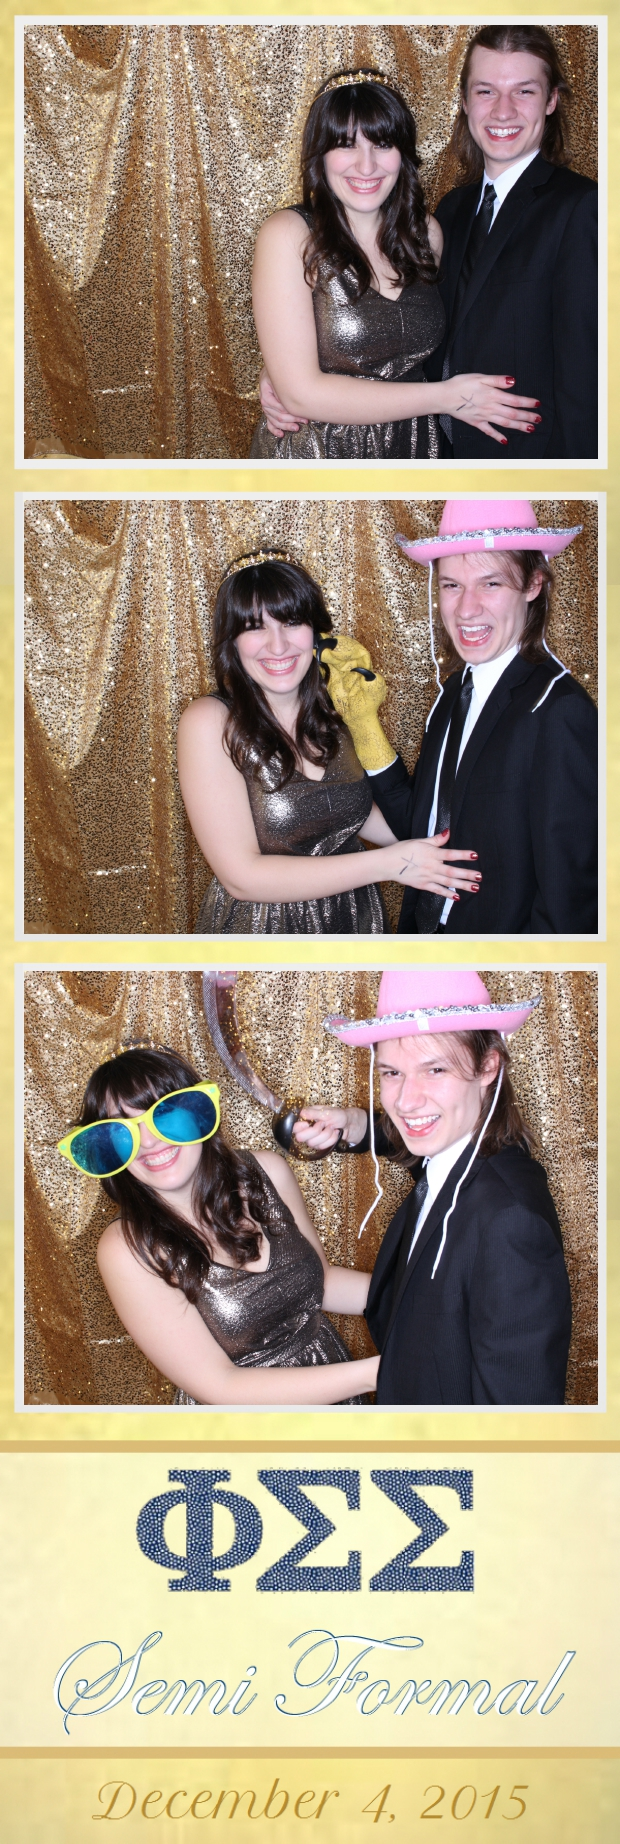 Guest House Events Photo Booth Phi Sigma Sigma Semi Formal (45).jpg